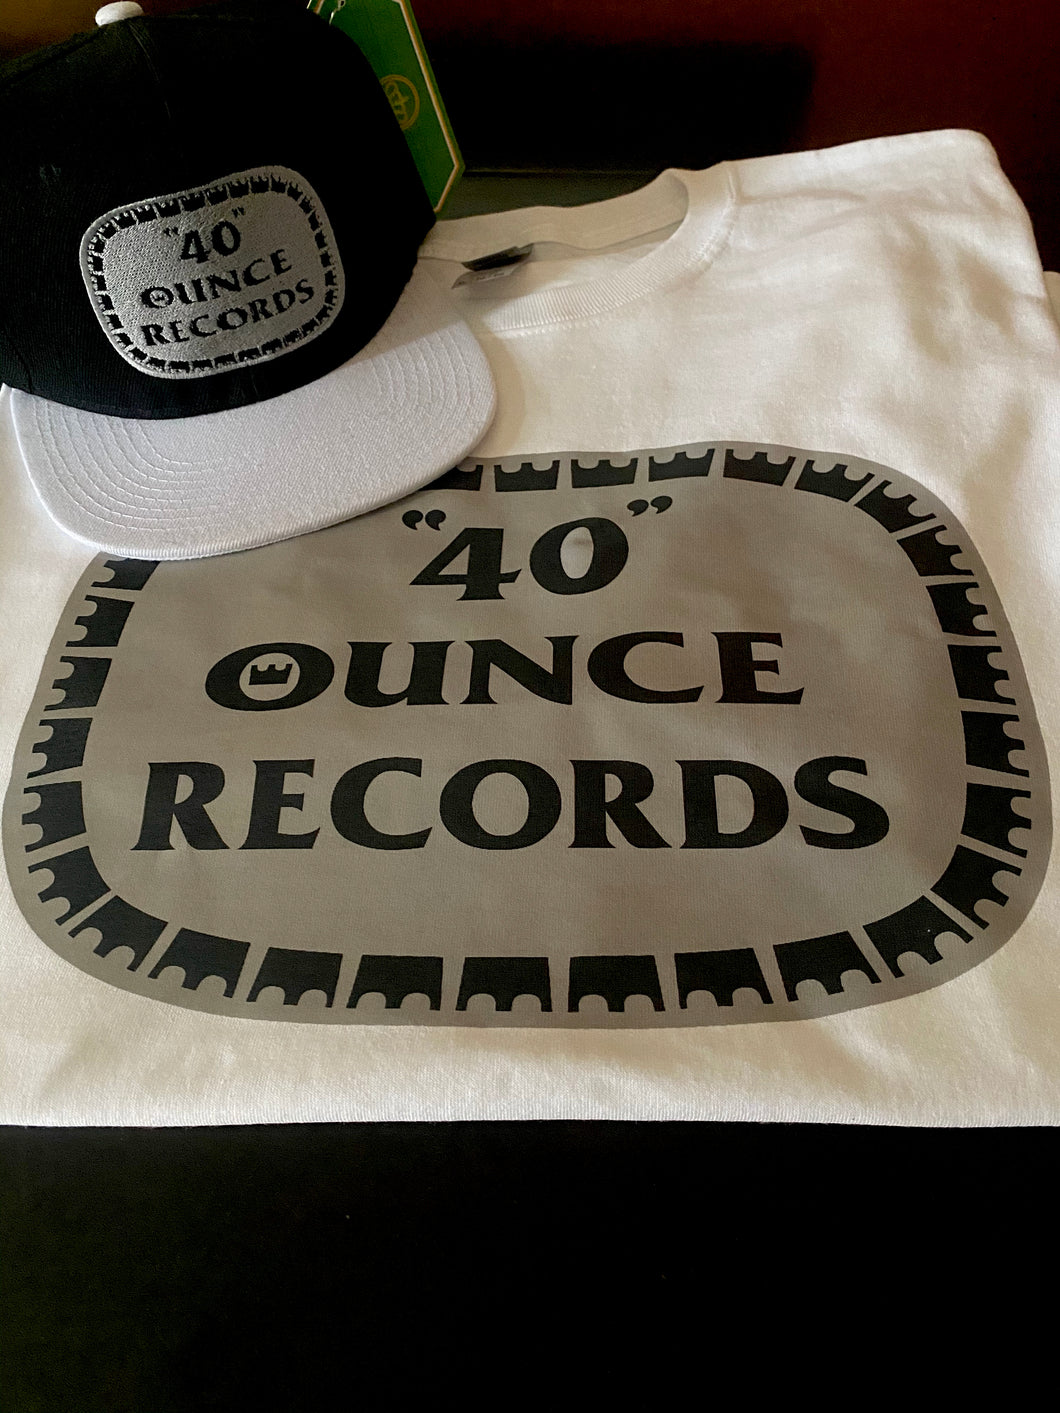 40 OUNCE RECORDS WHITE T-SHIRT & HAT PLAYER PACK (LIMITED EDITION)